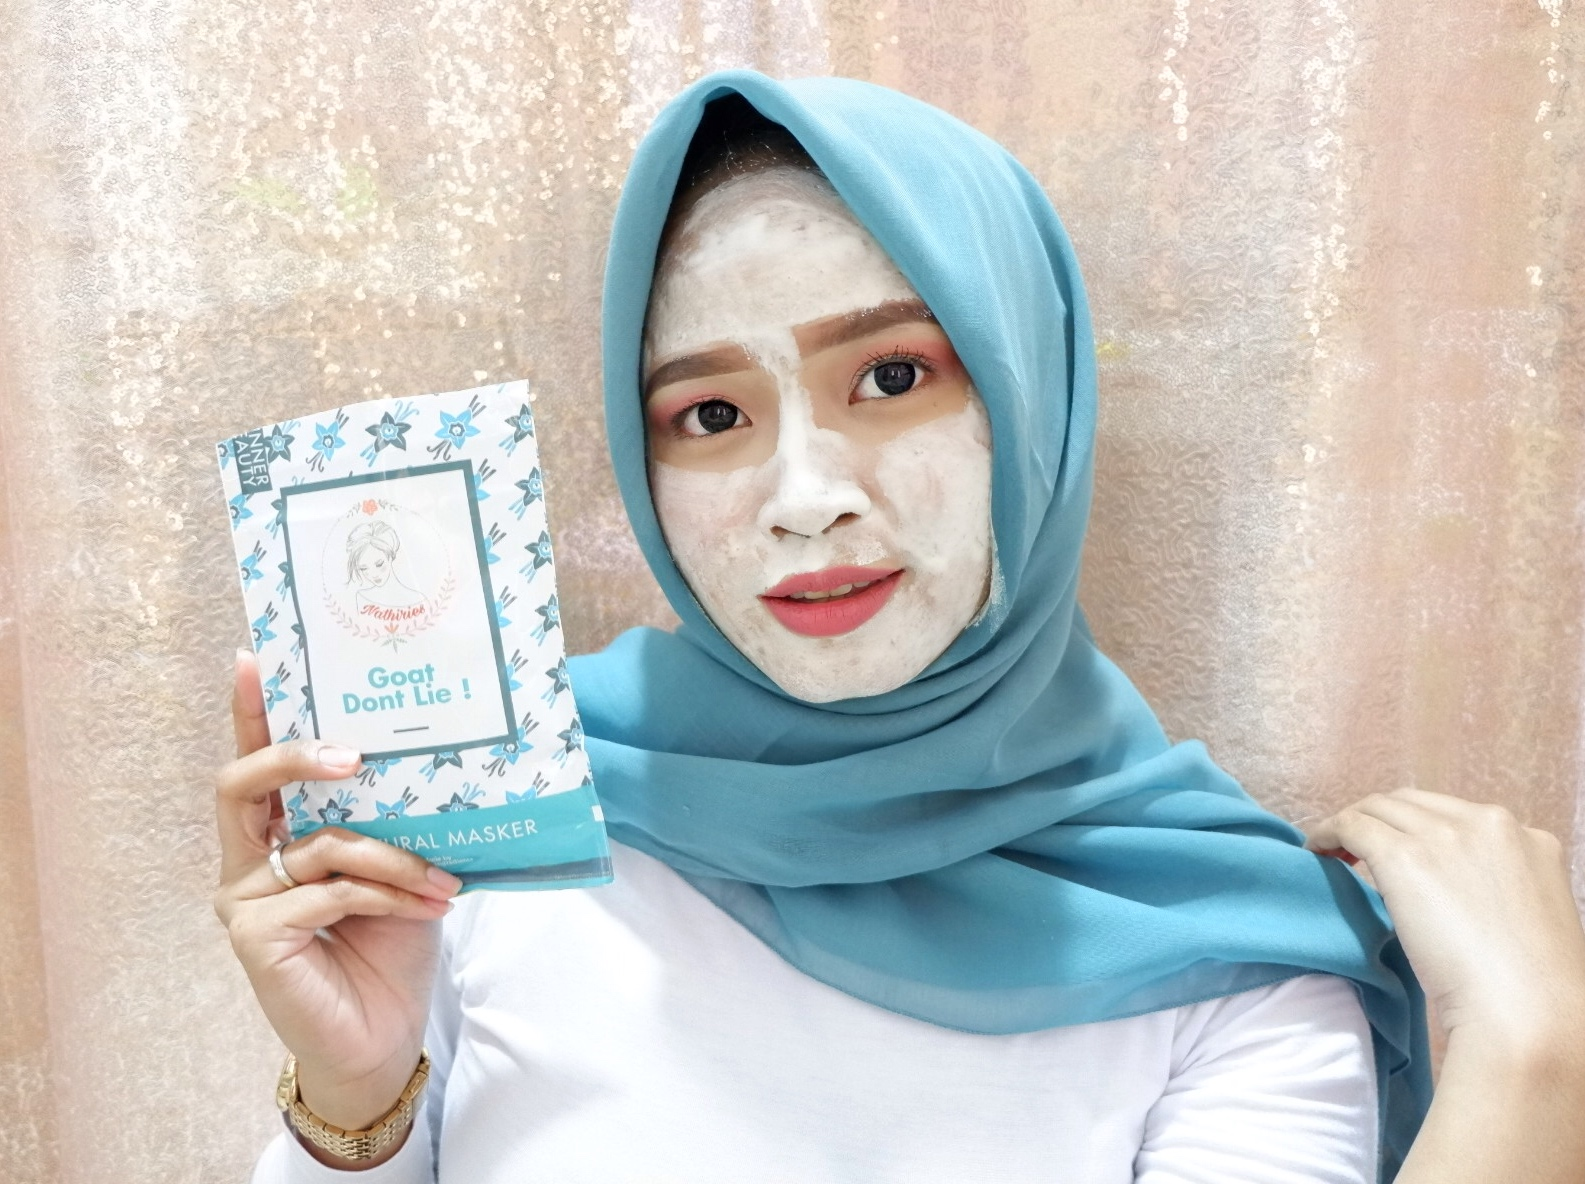 Hi Nate! Masker Organic by Nathiries (Goat Dont Lie!)